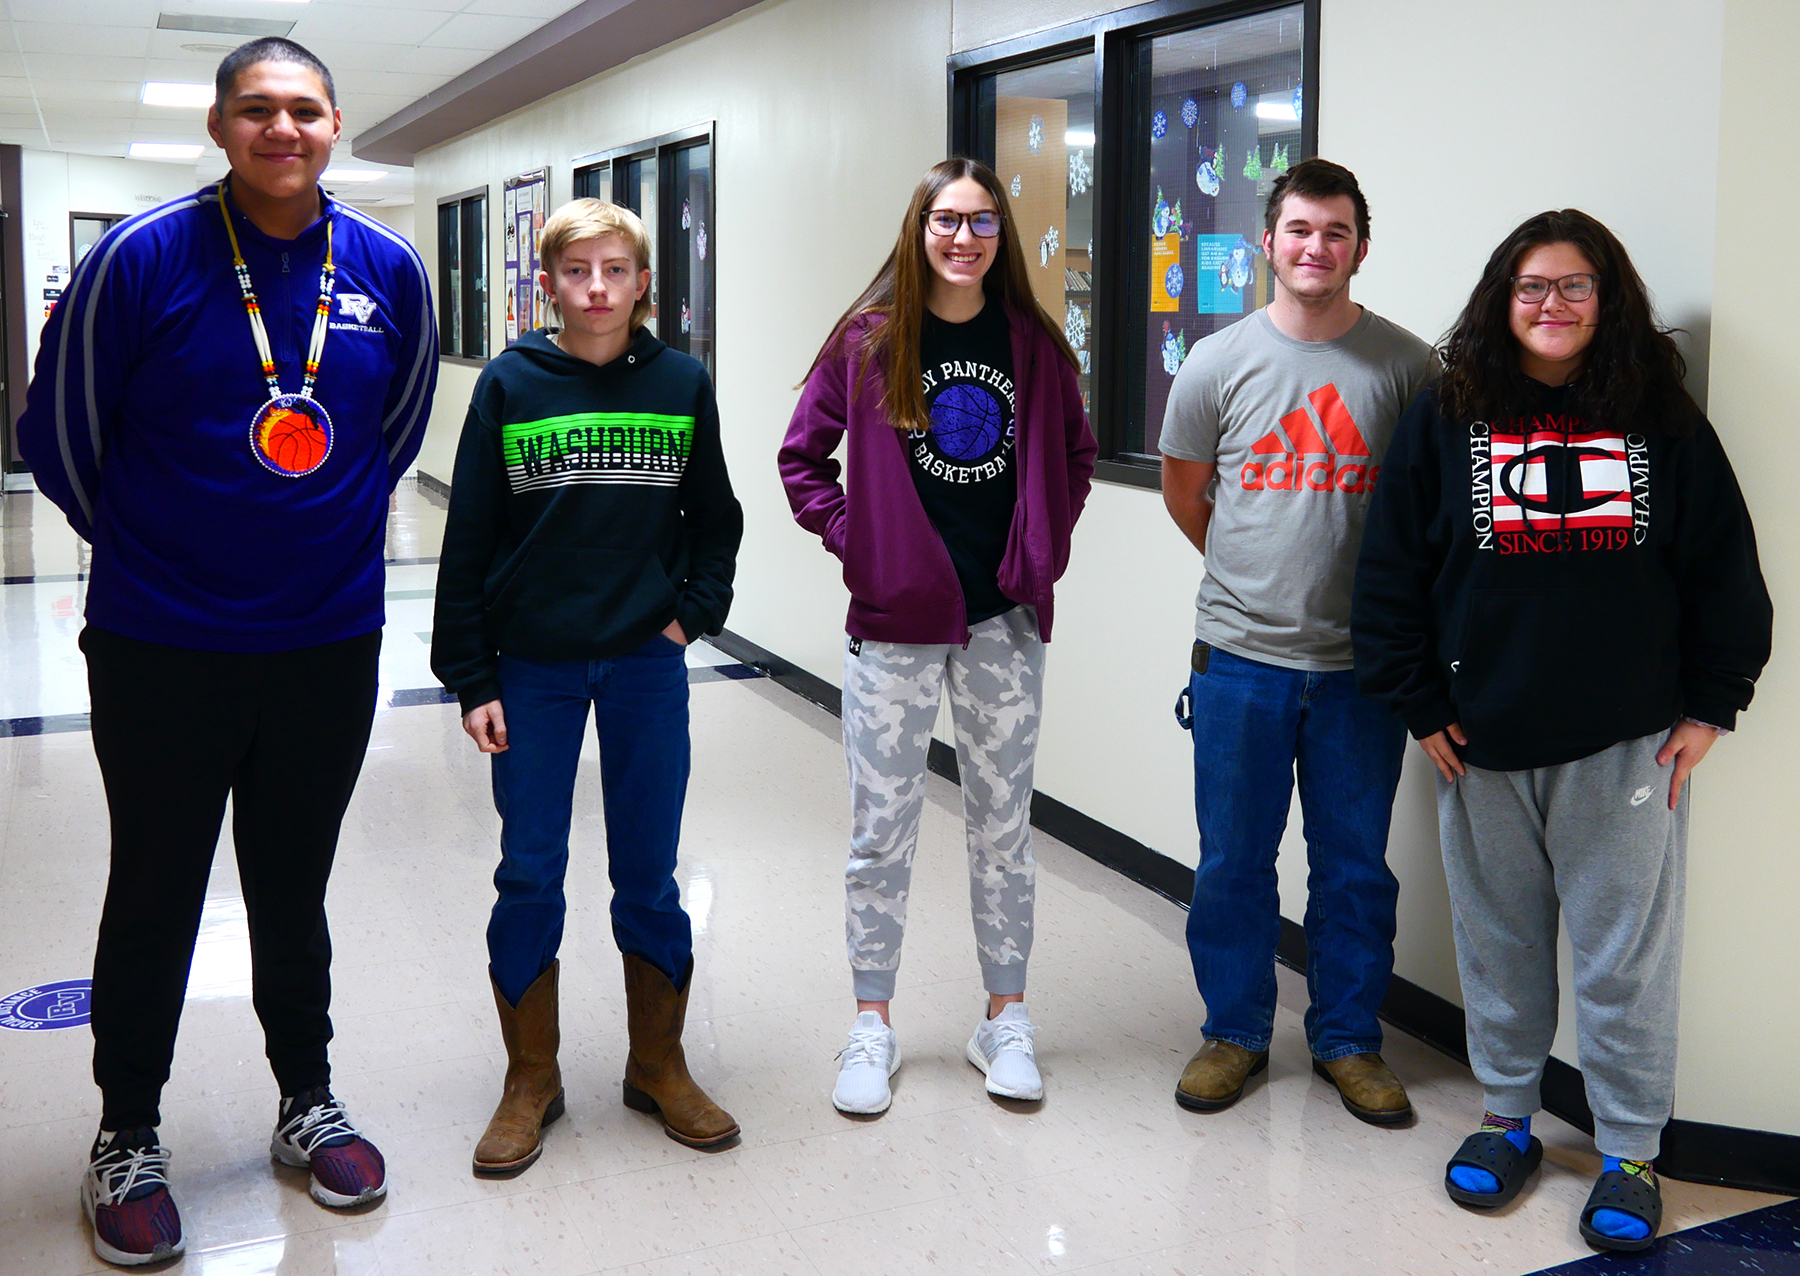 What do these students have in common? (Hint: This is the 50th anniversary of Royal Valley High School)